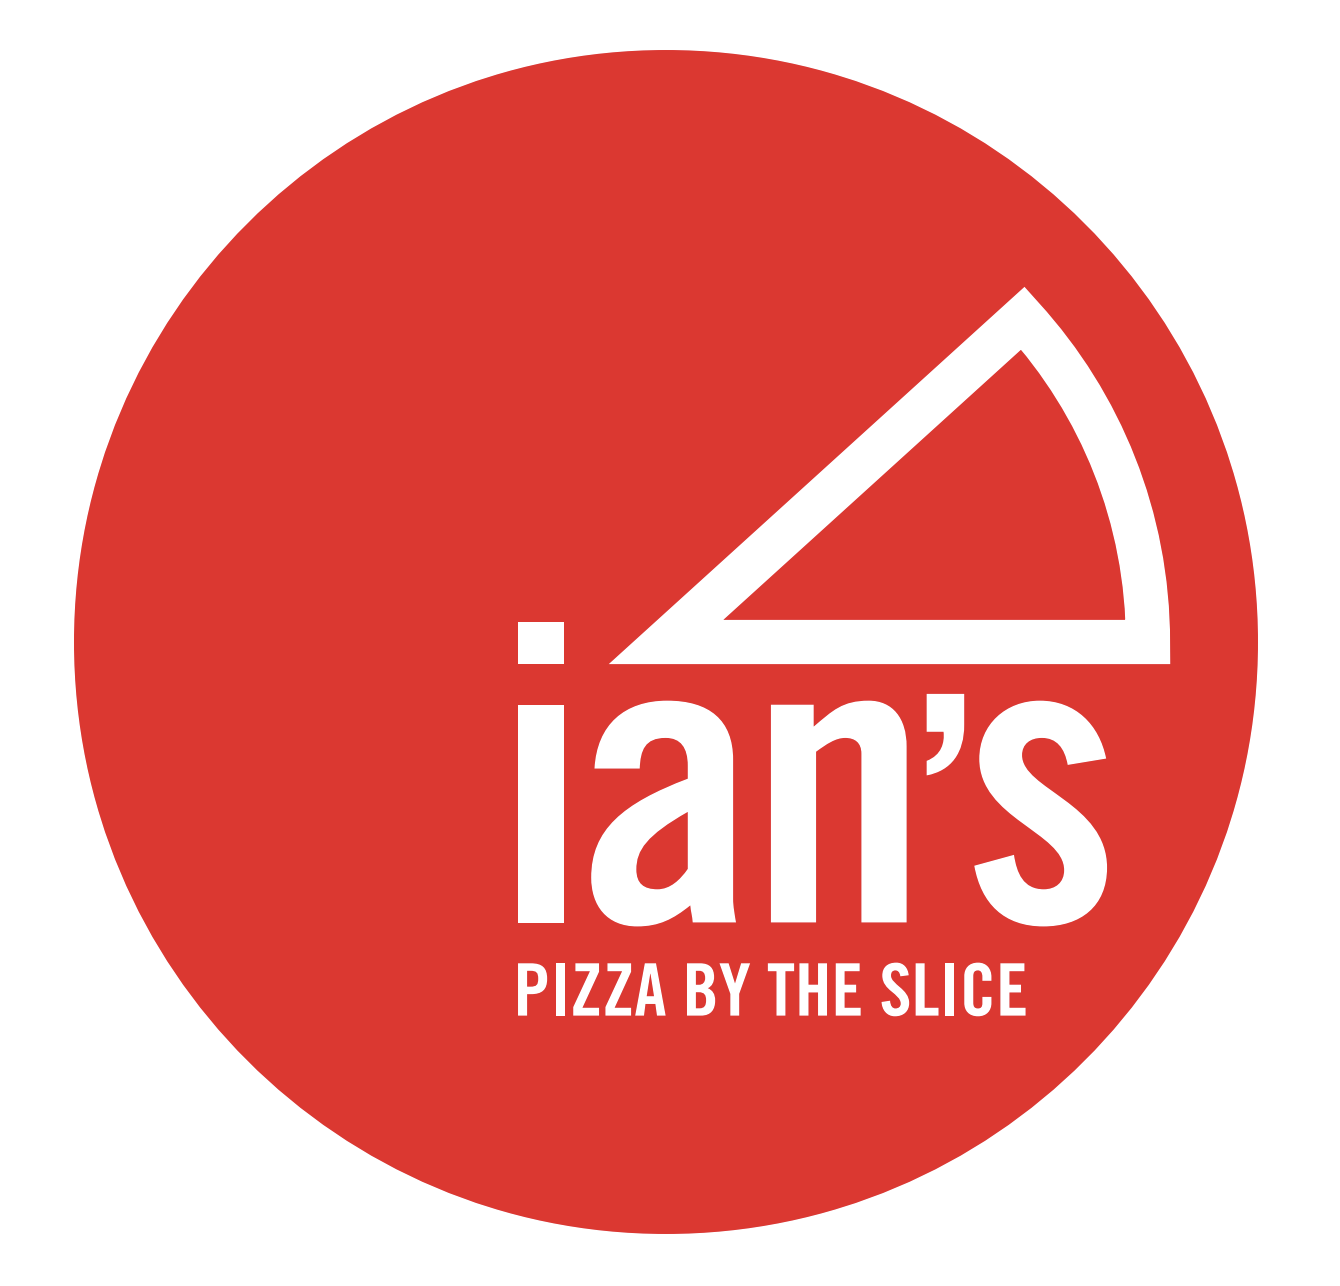 Ian's Pizza (State St.)